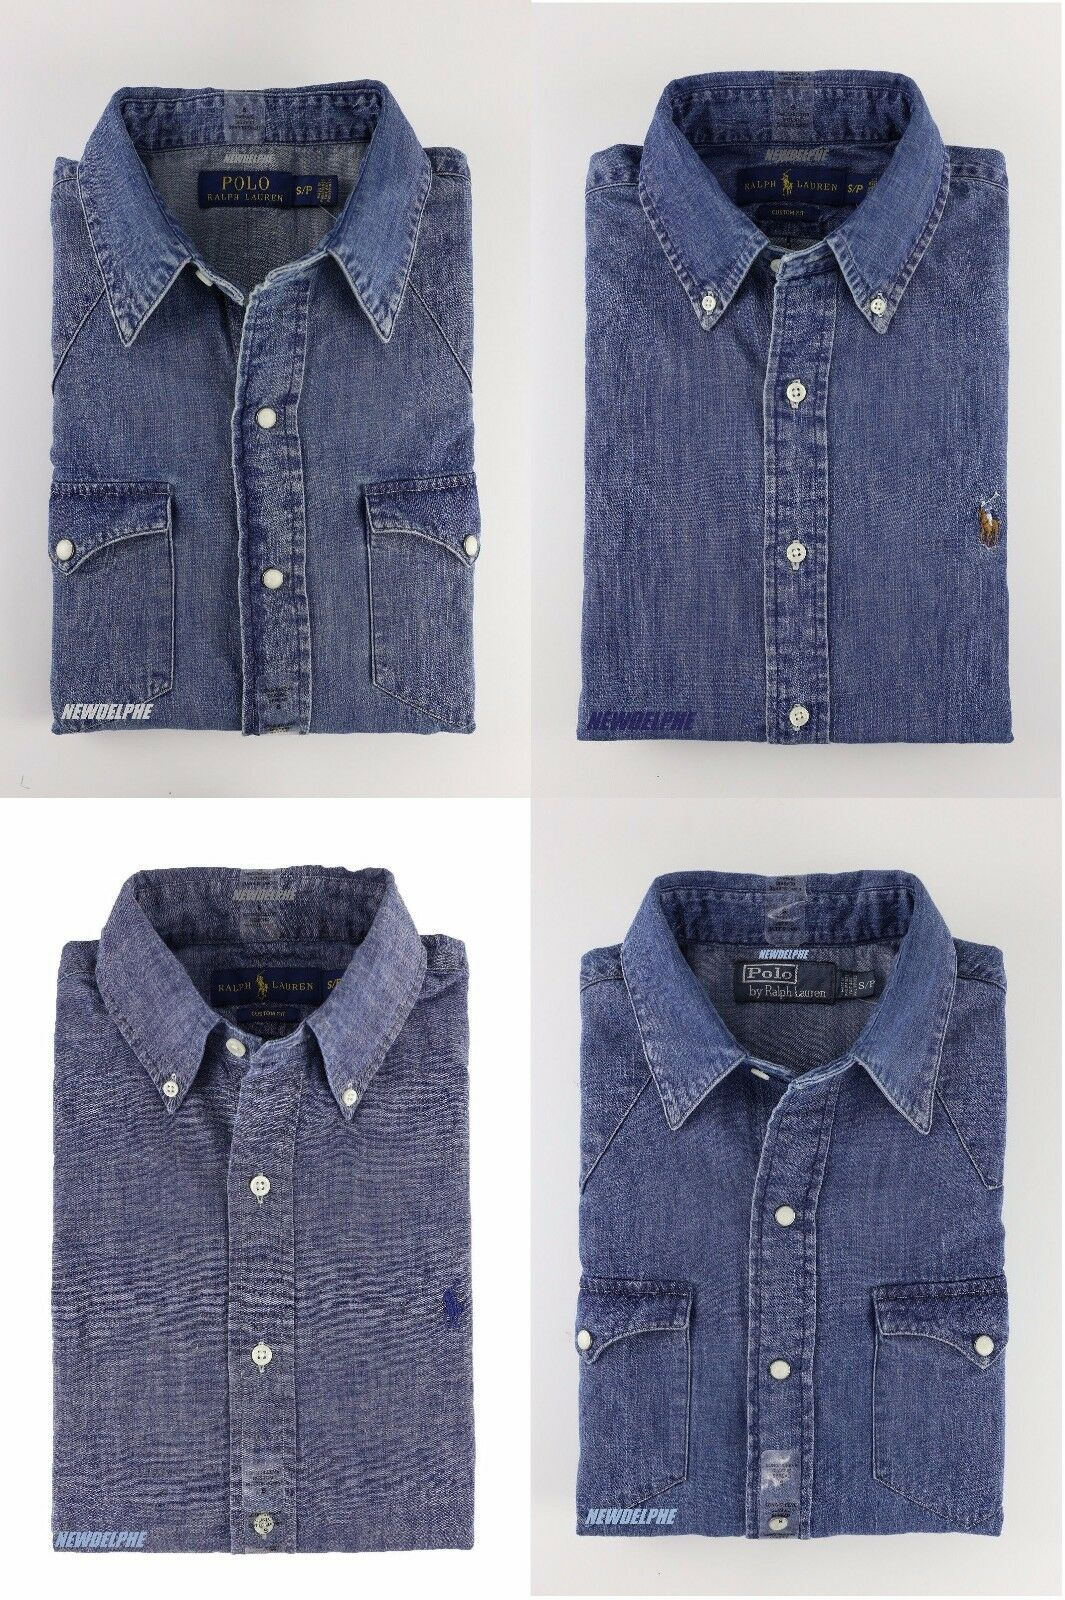 4c79f3d78 NWT Polo Ralph Lauren Men's Long Sleeve Denim Button Down Shirts S M L XL  2XL